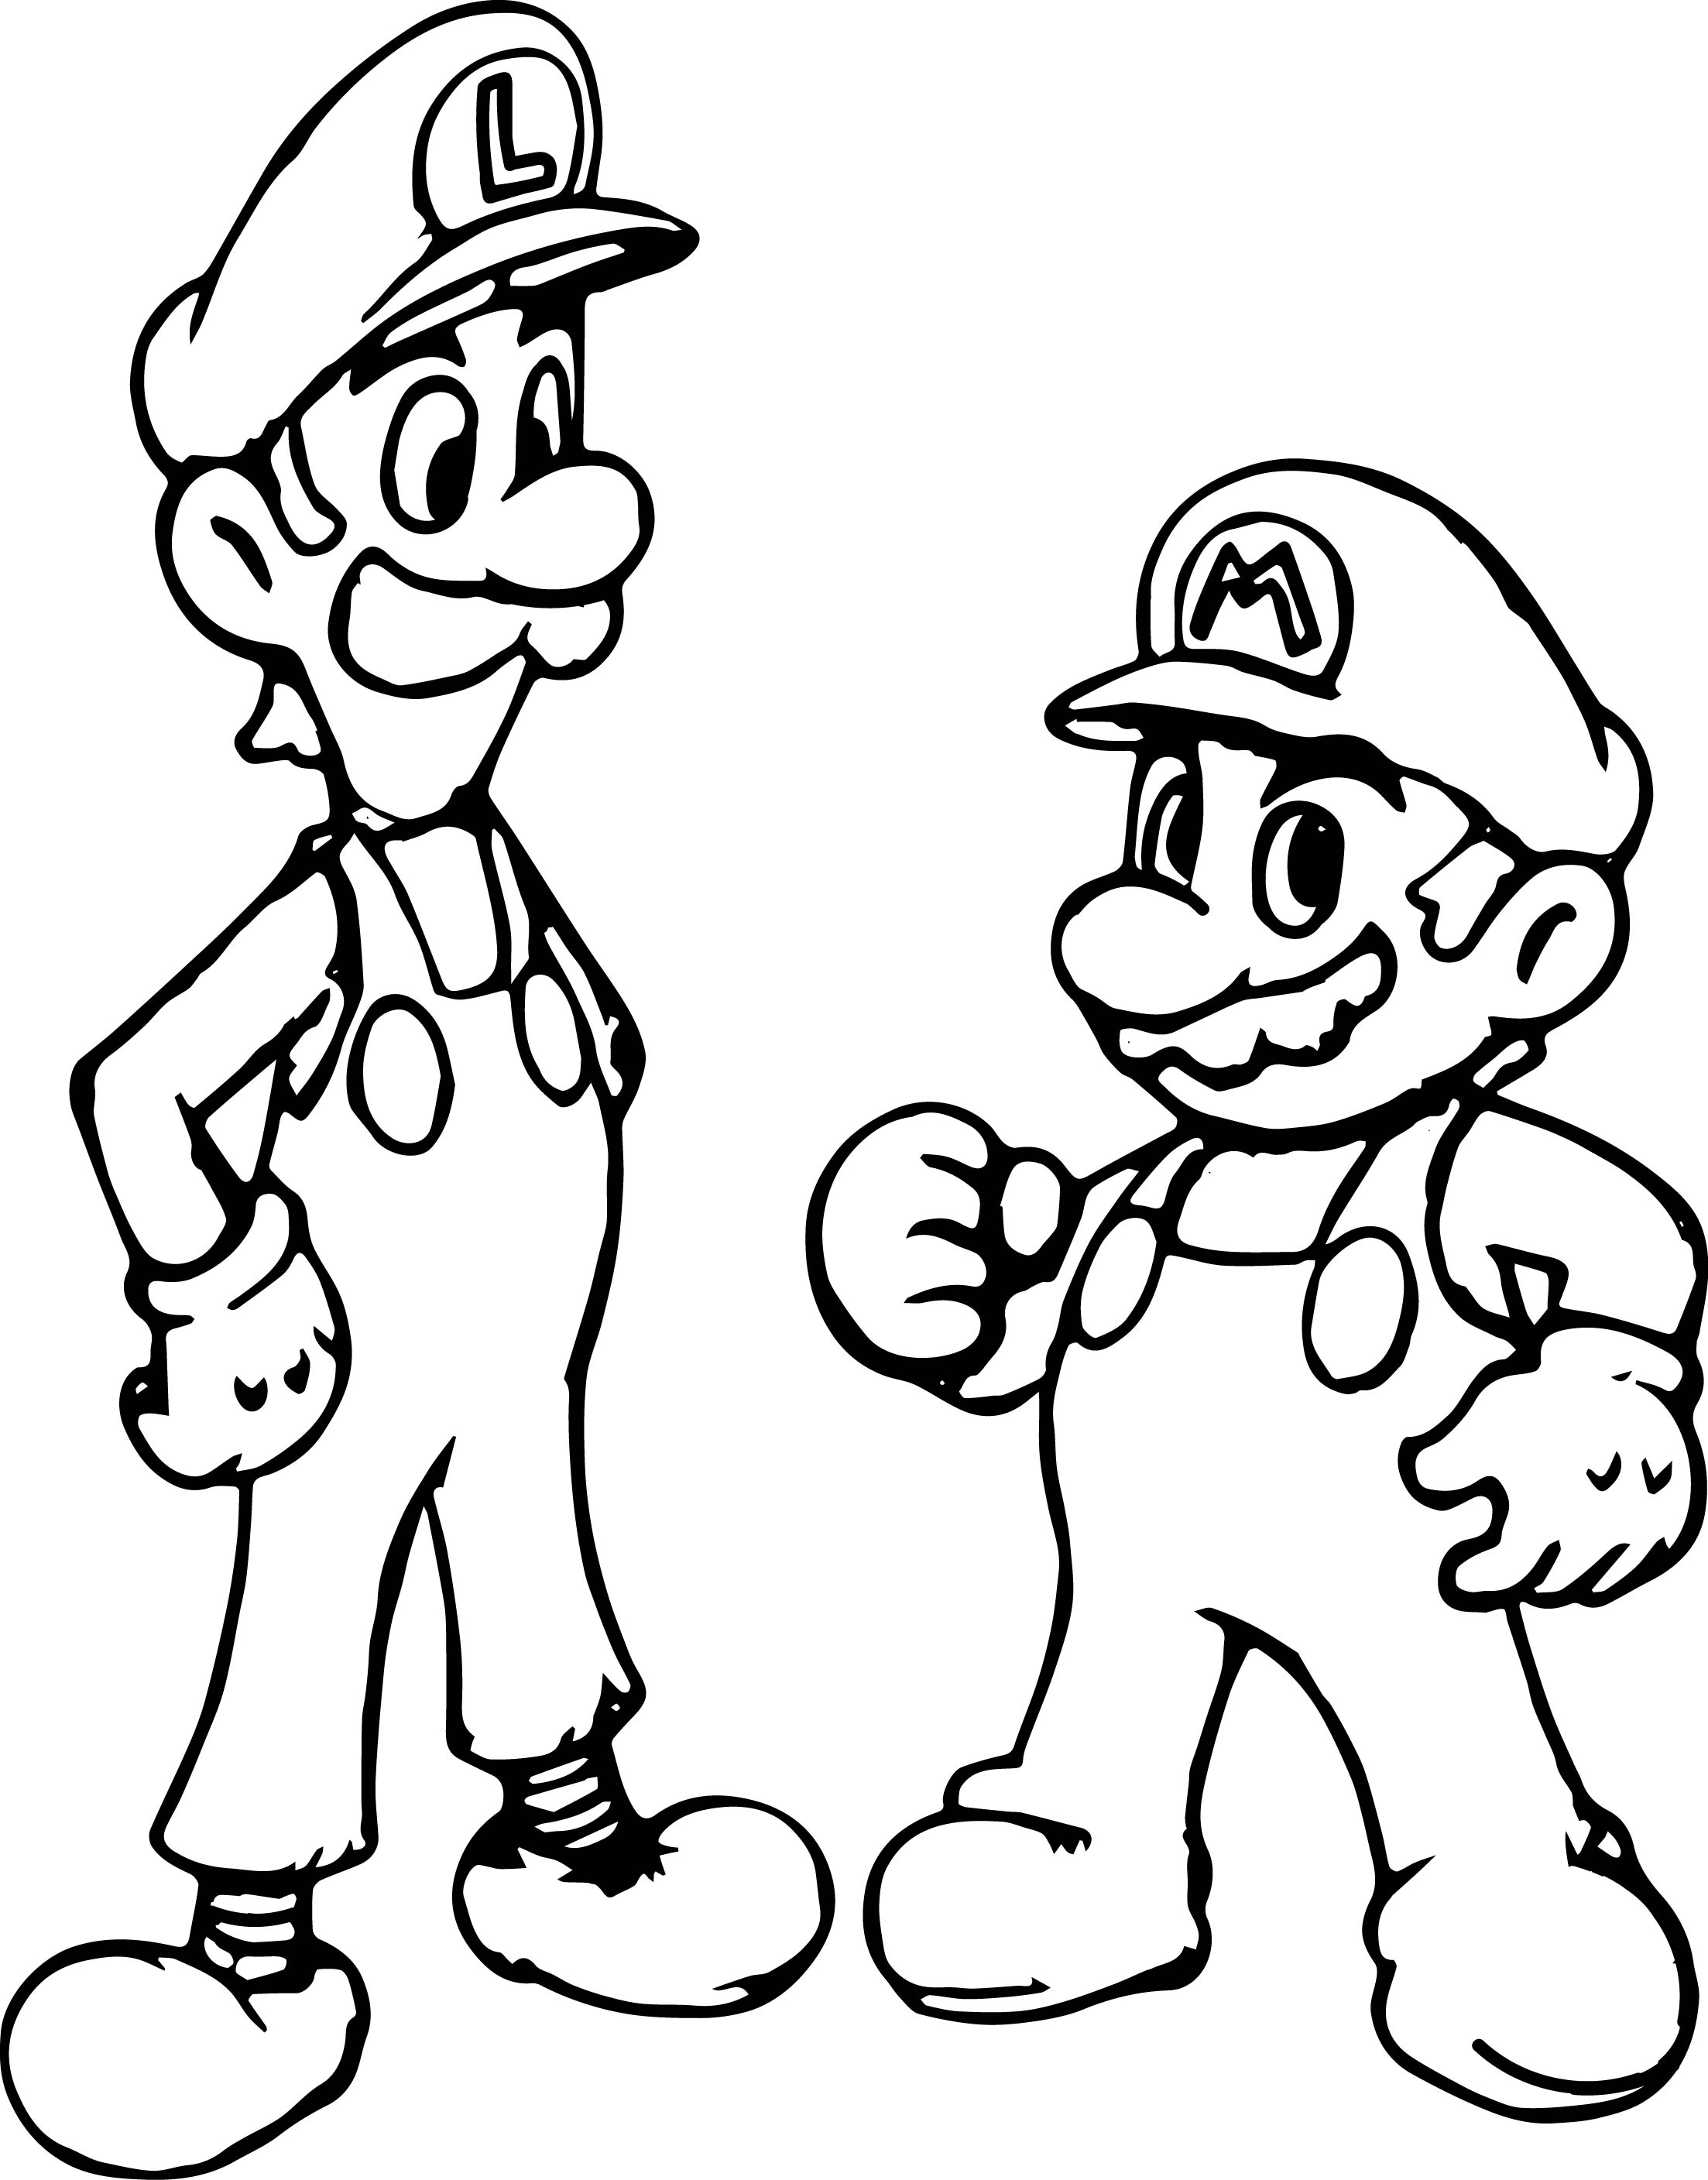 Super Mario And Luigi Coloring Page